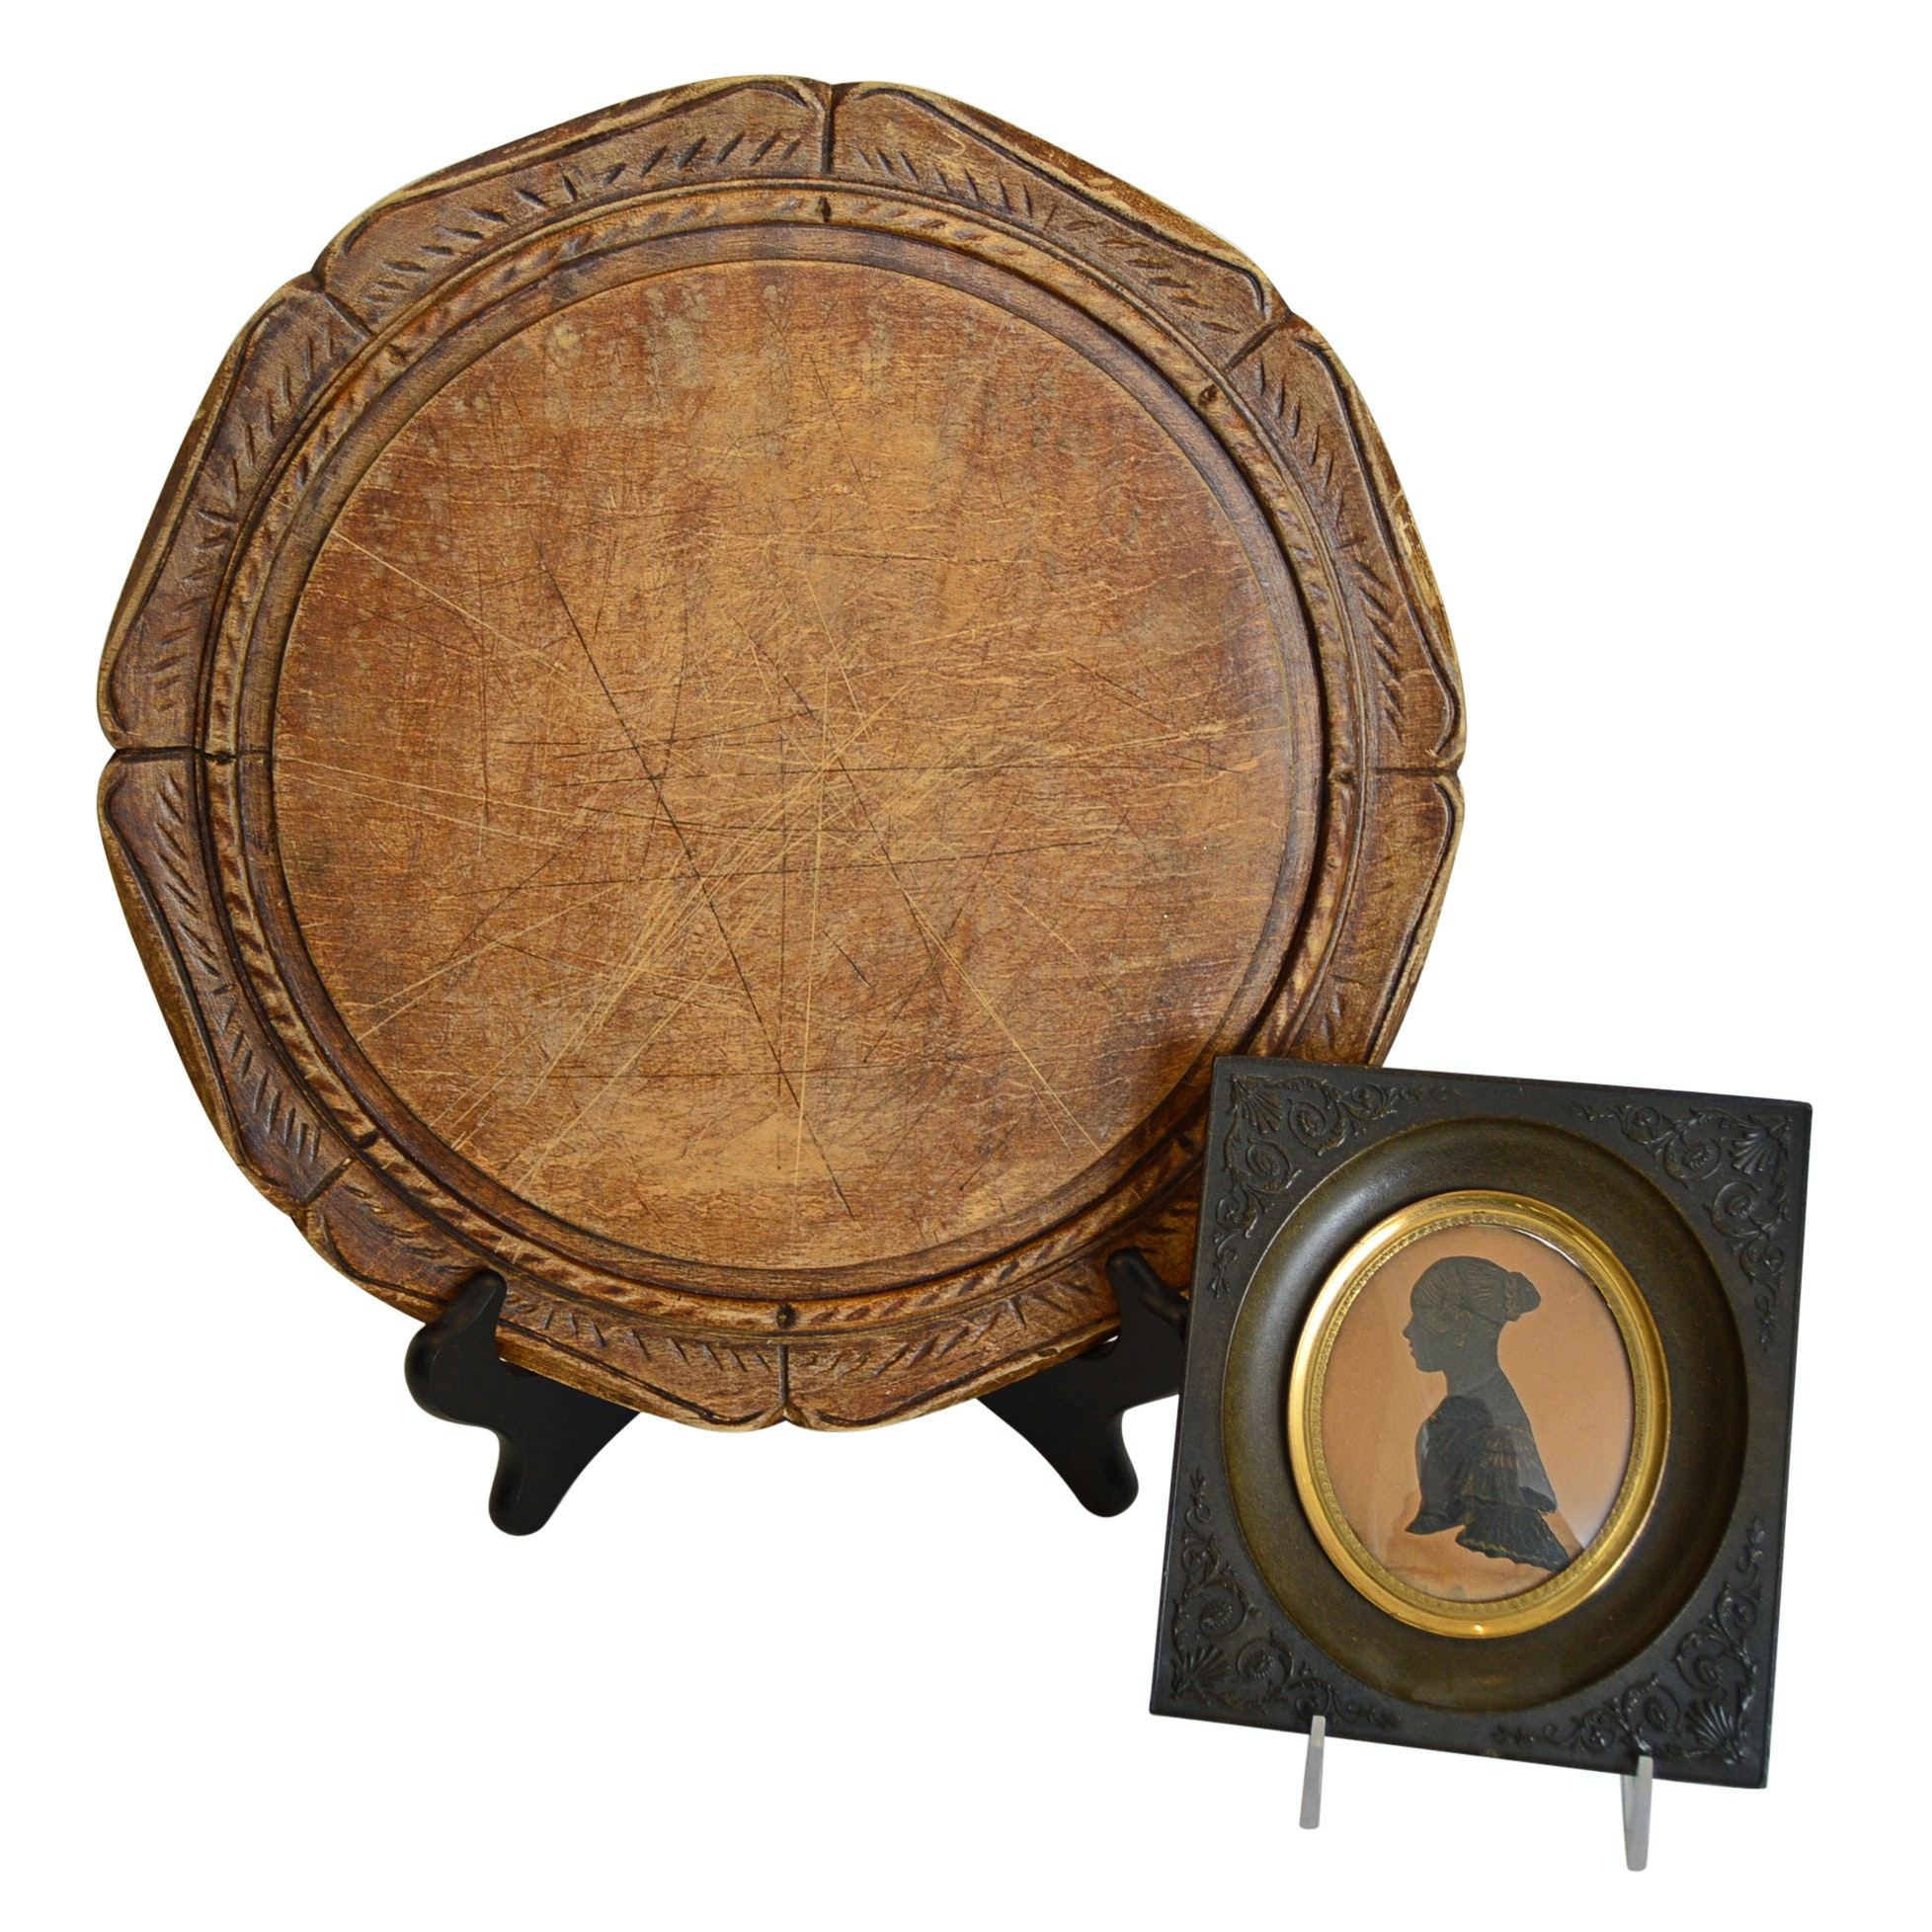 Antique Treenware Platter and Framed Ancestral Silhouette